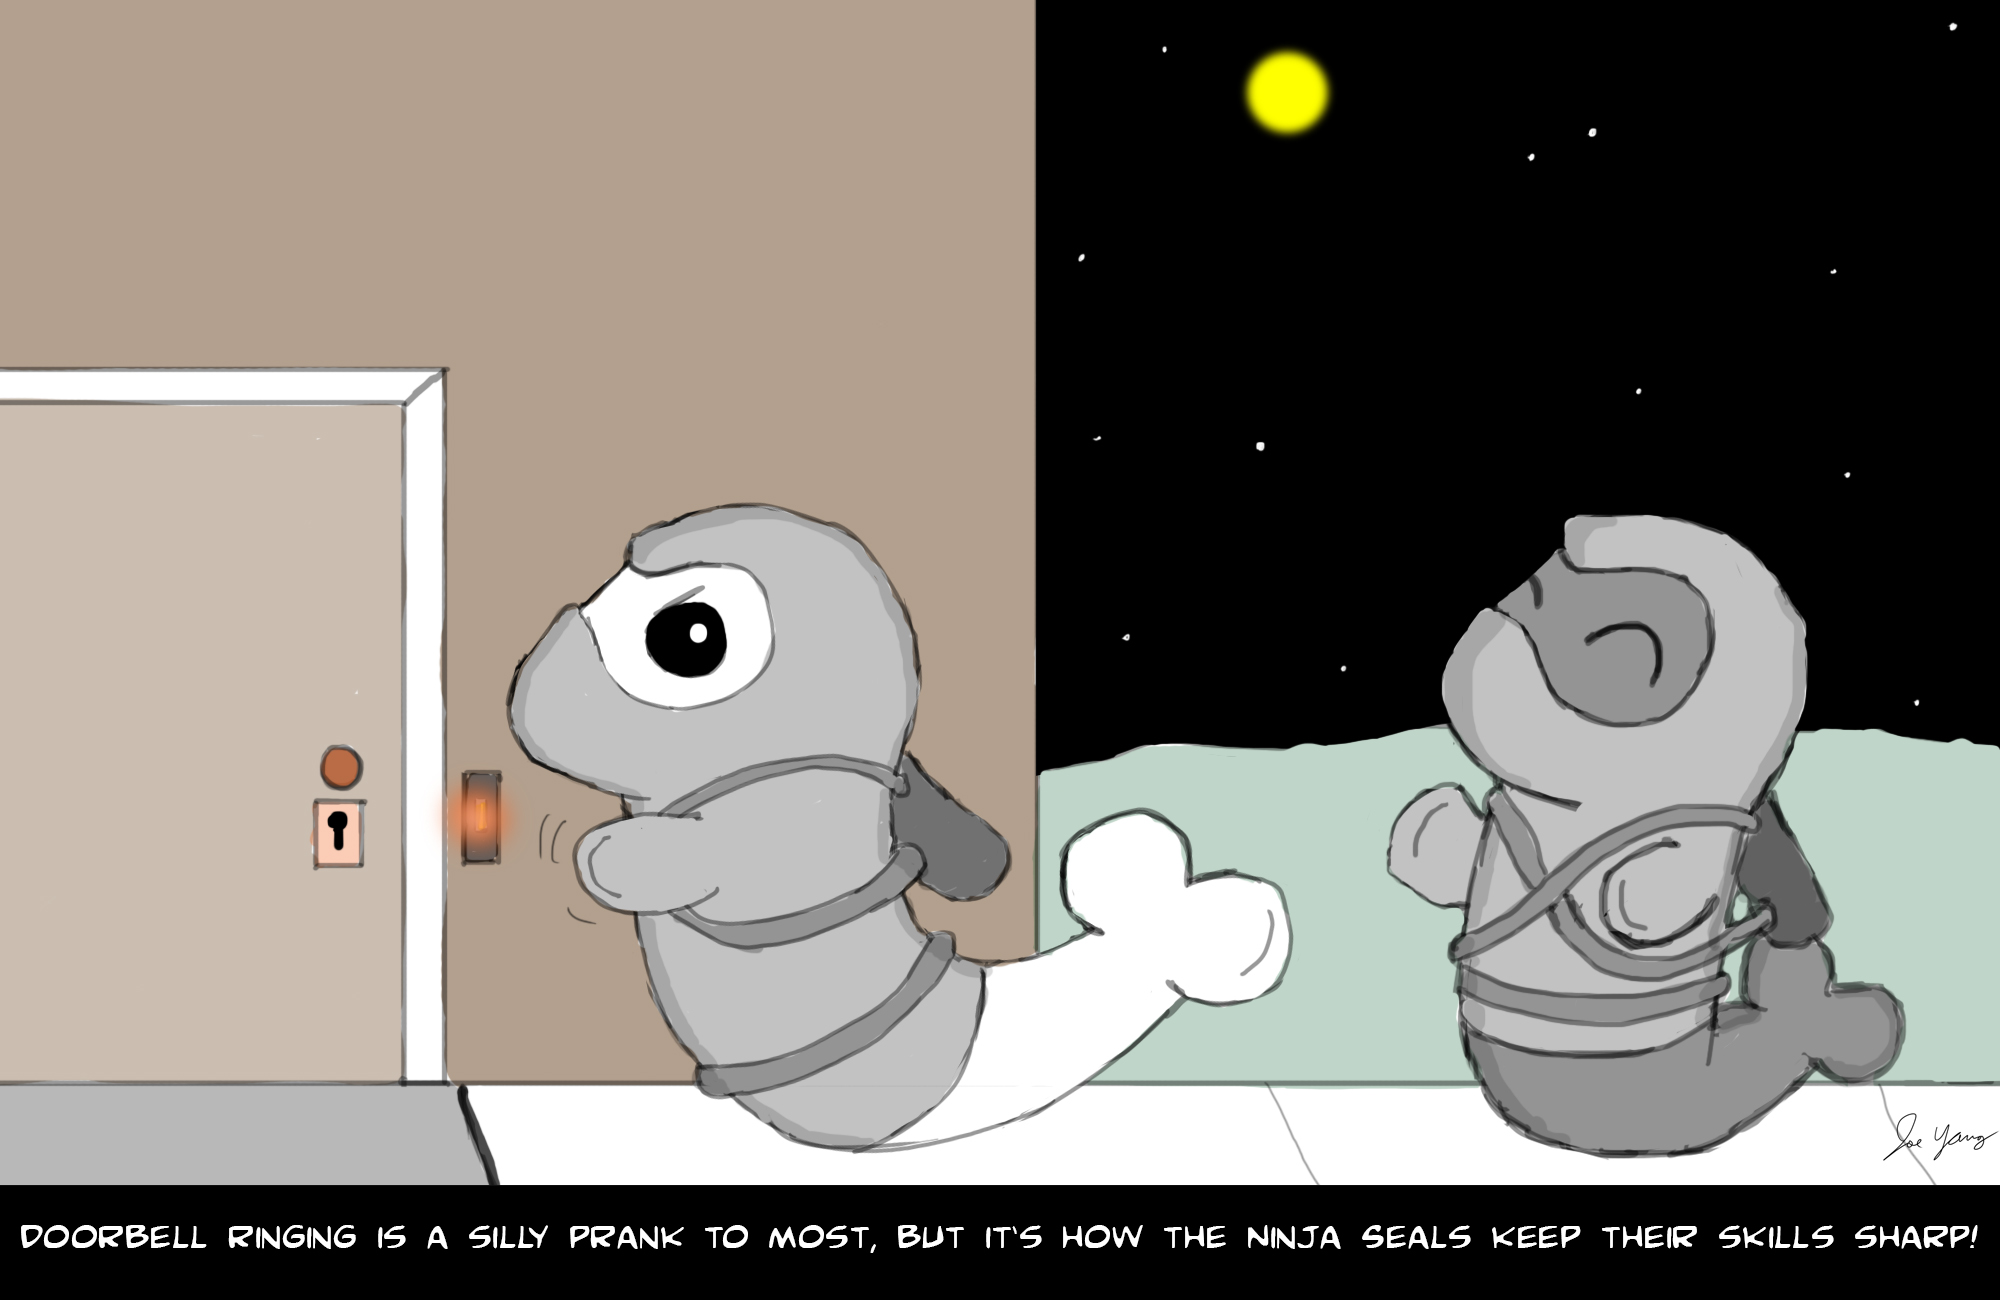 Doorbell ringing is a silly prank to most, but it's how the Ninja Seals keep their skills sharp!